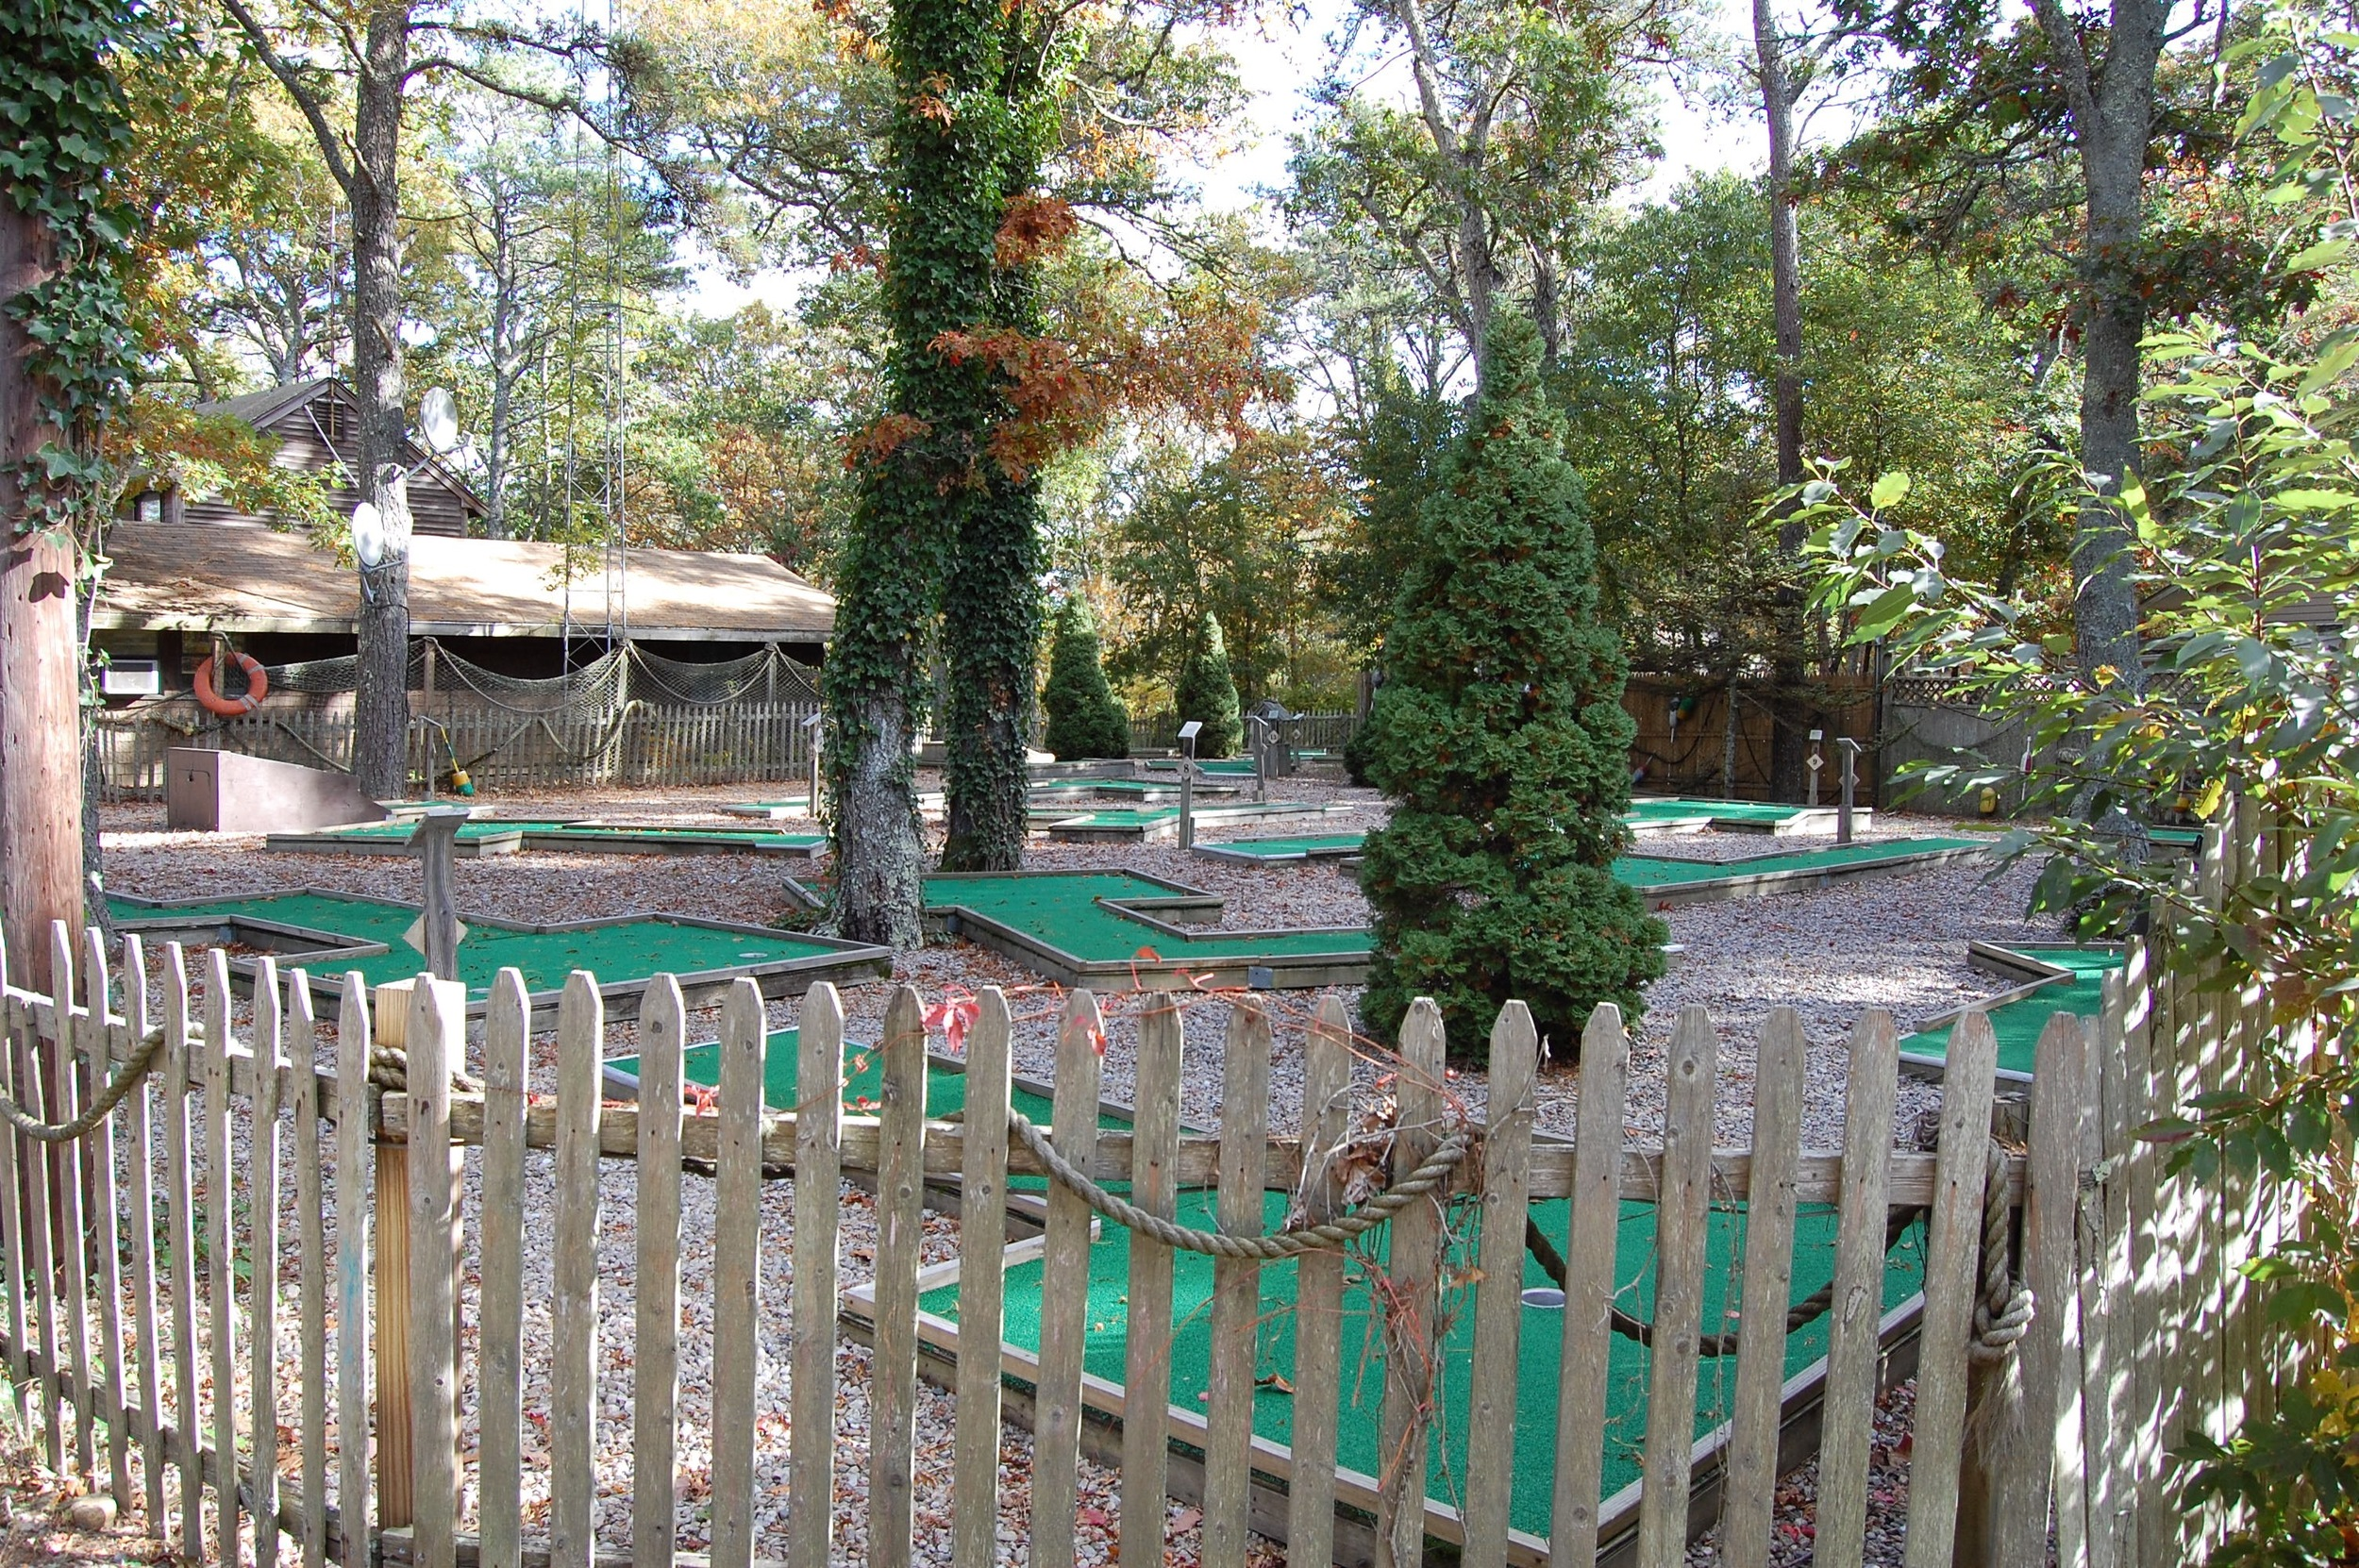 There's even a mini-golf course on the property!